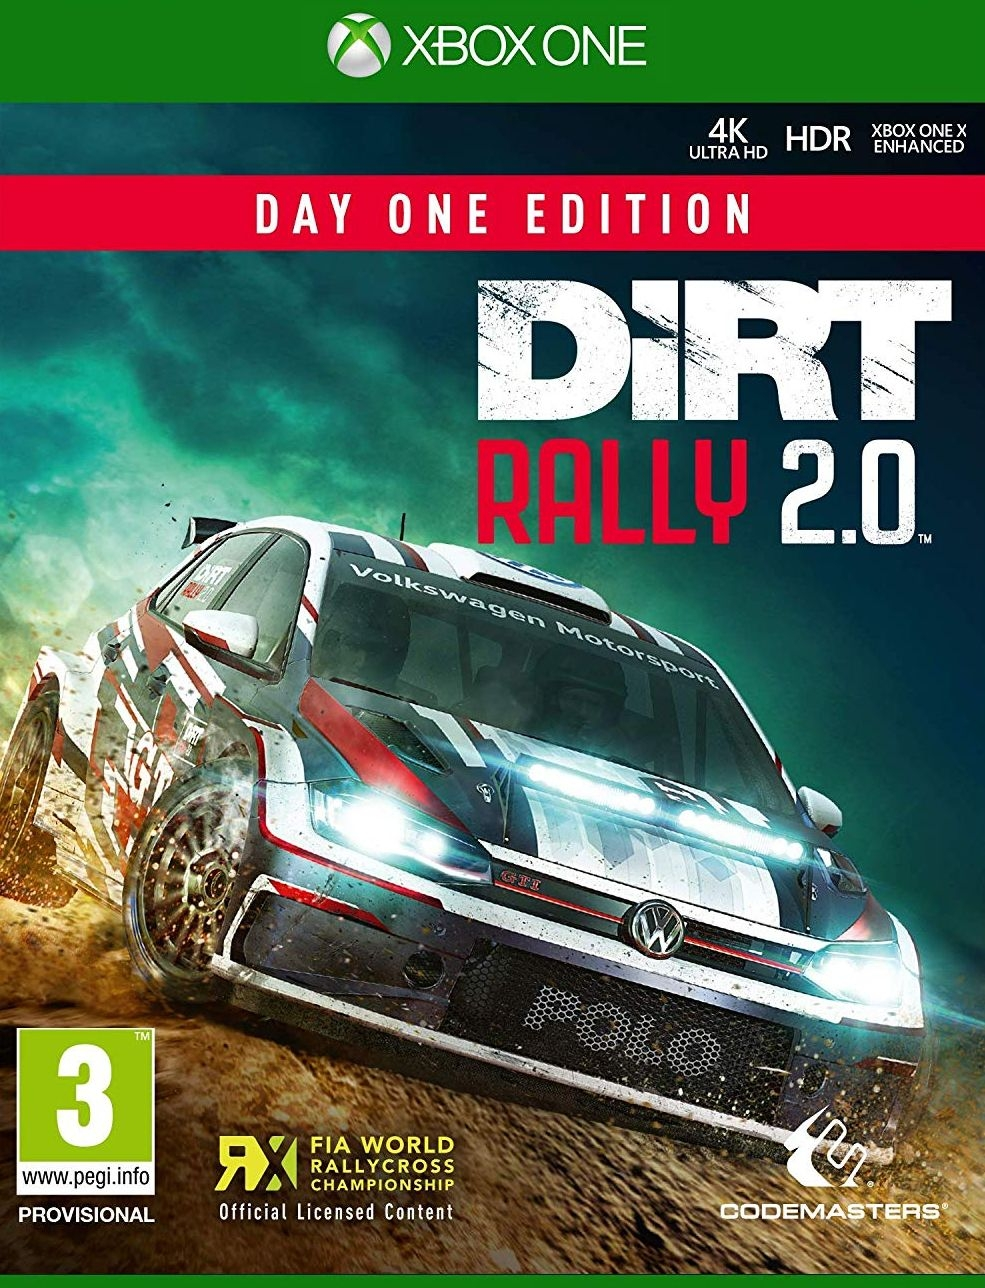 XBOXOne Dirt Rally 2.0 Day One Edition